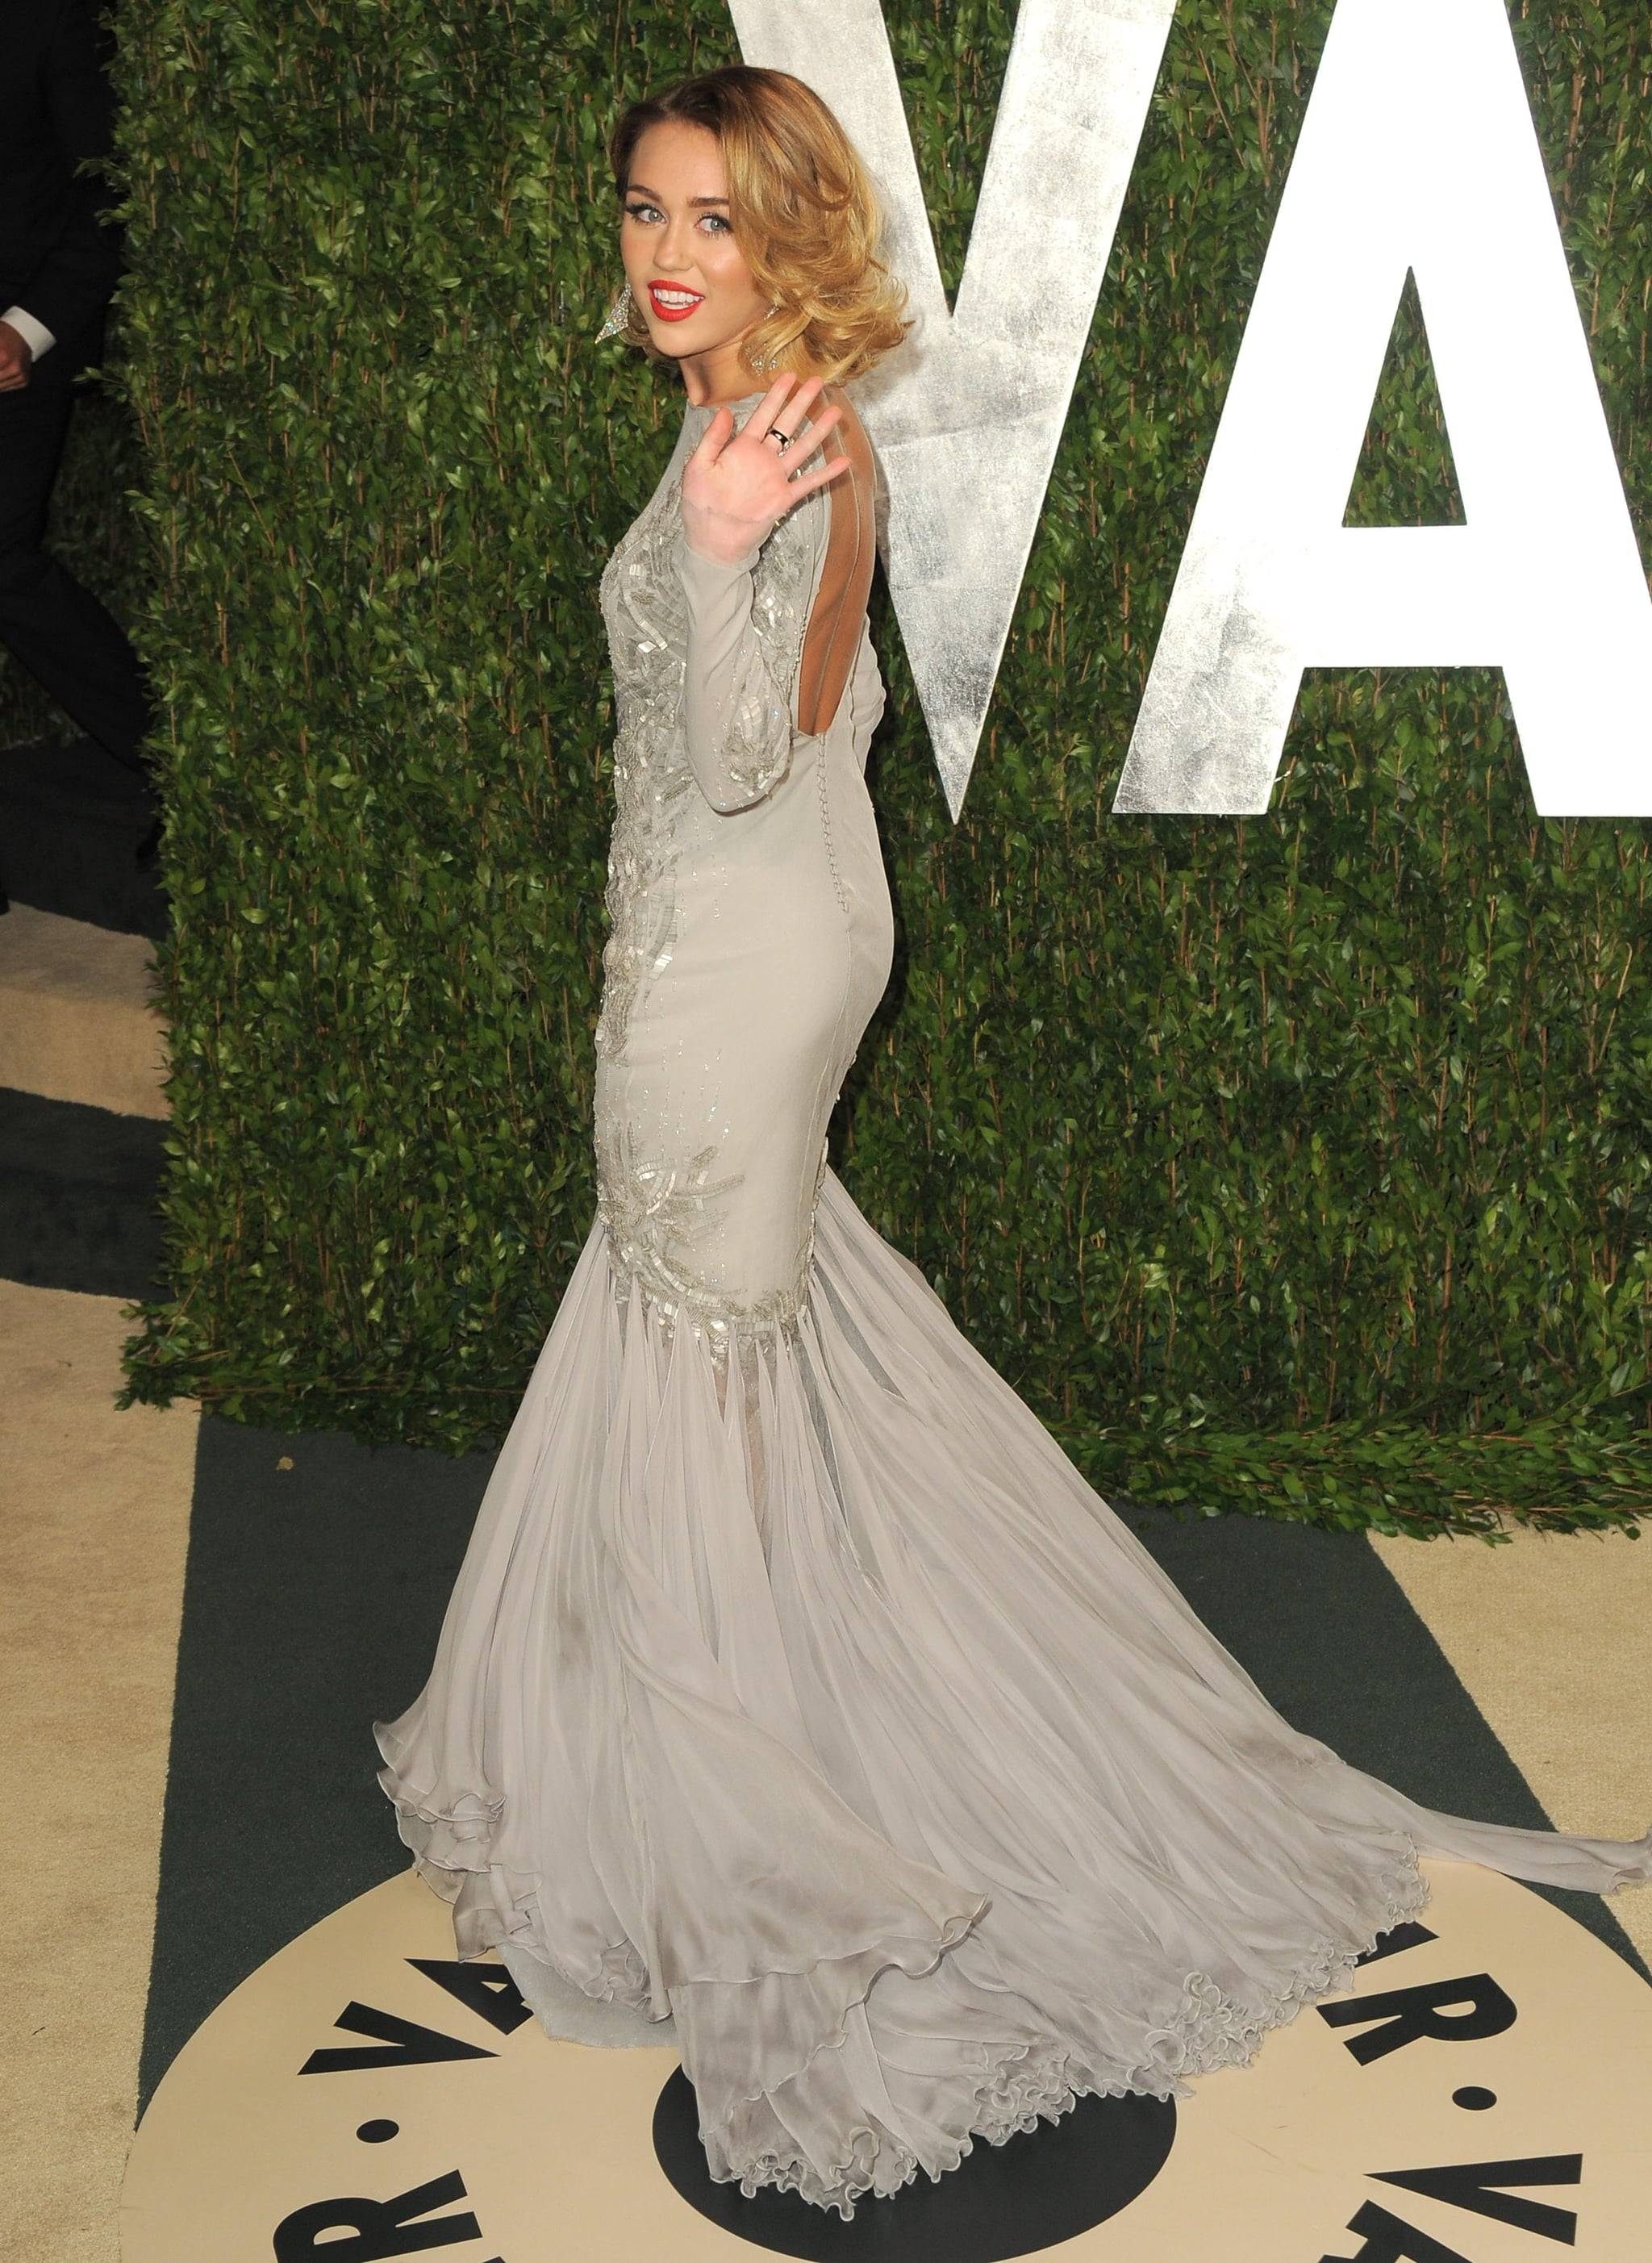 Miley Cyrus makes her way into the Vanity Fair party.